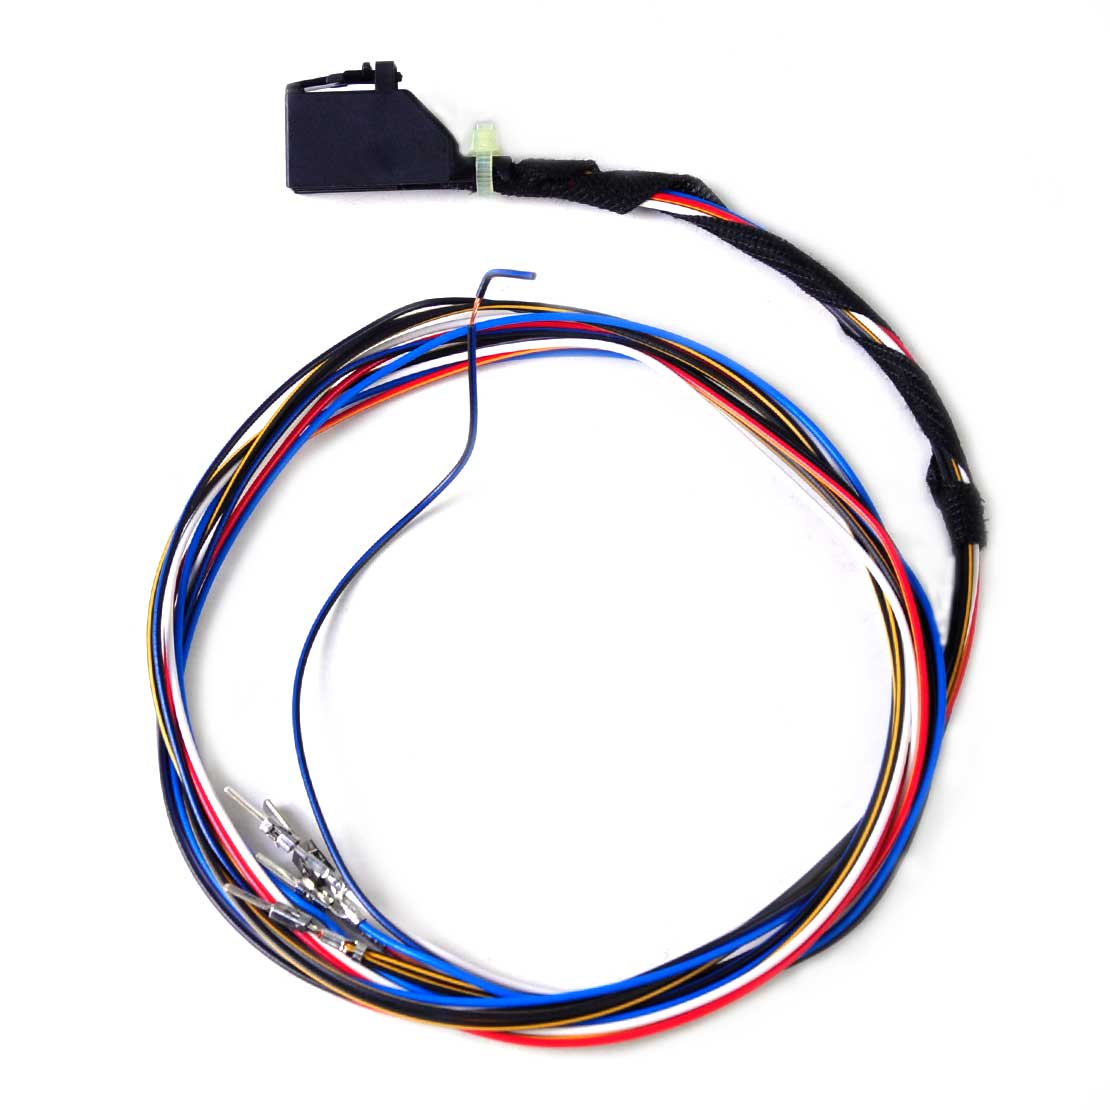 Beler 1j1 970 011 F Gra Cruise Control System Harness Cable Wire For Honda Civic Wiring Vw Jetta Golf Gti Bora Mk4 Passat B5 Seat Alhambra Skoda In Cables Adapters Sockets